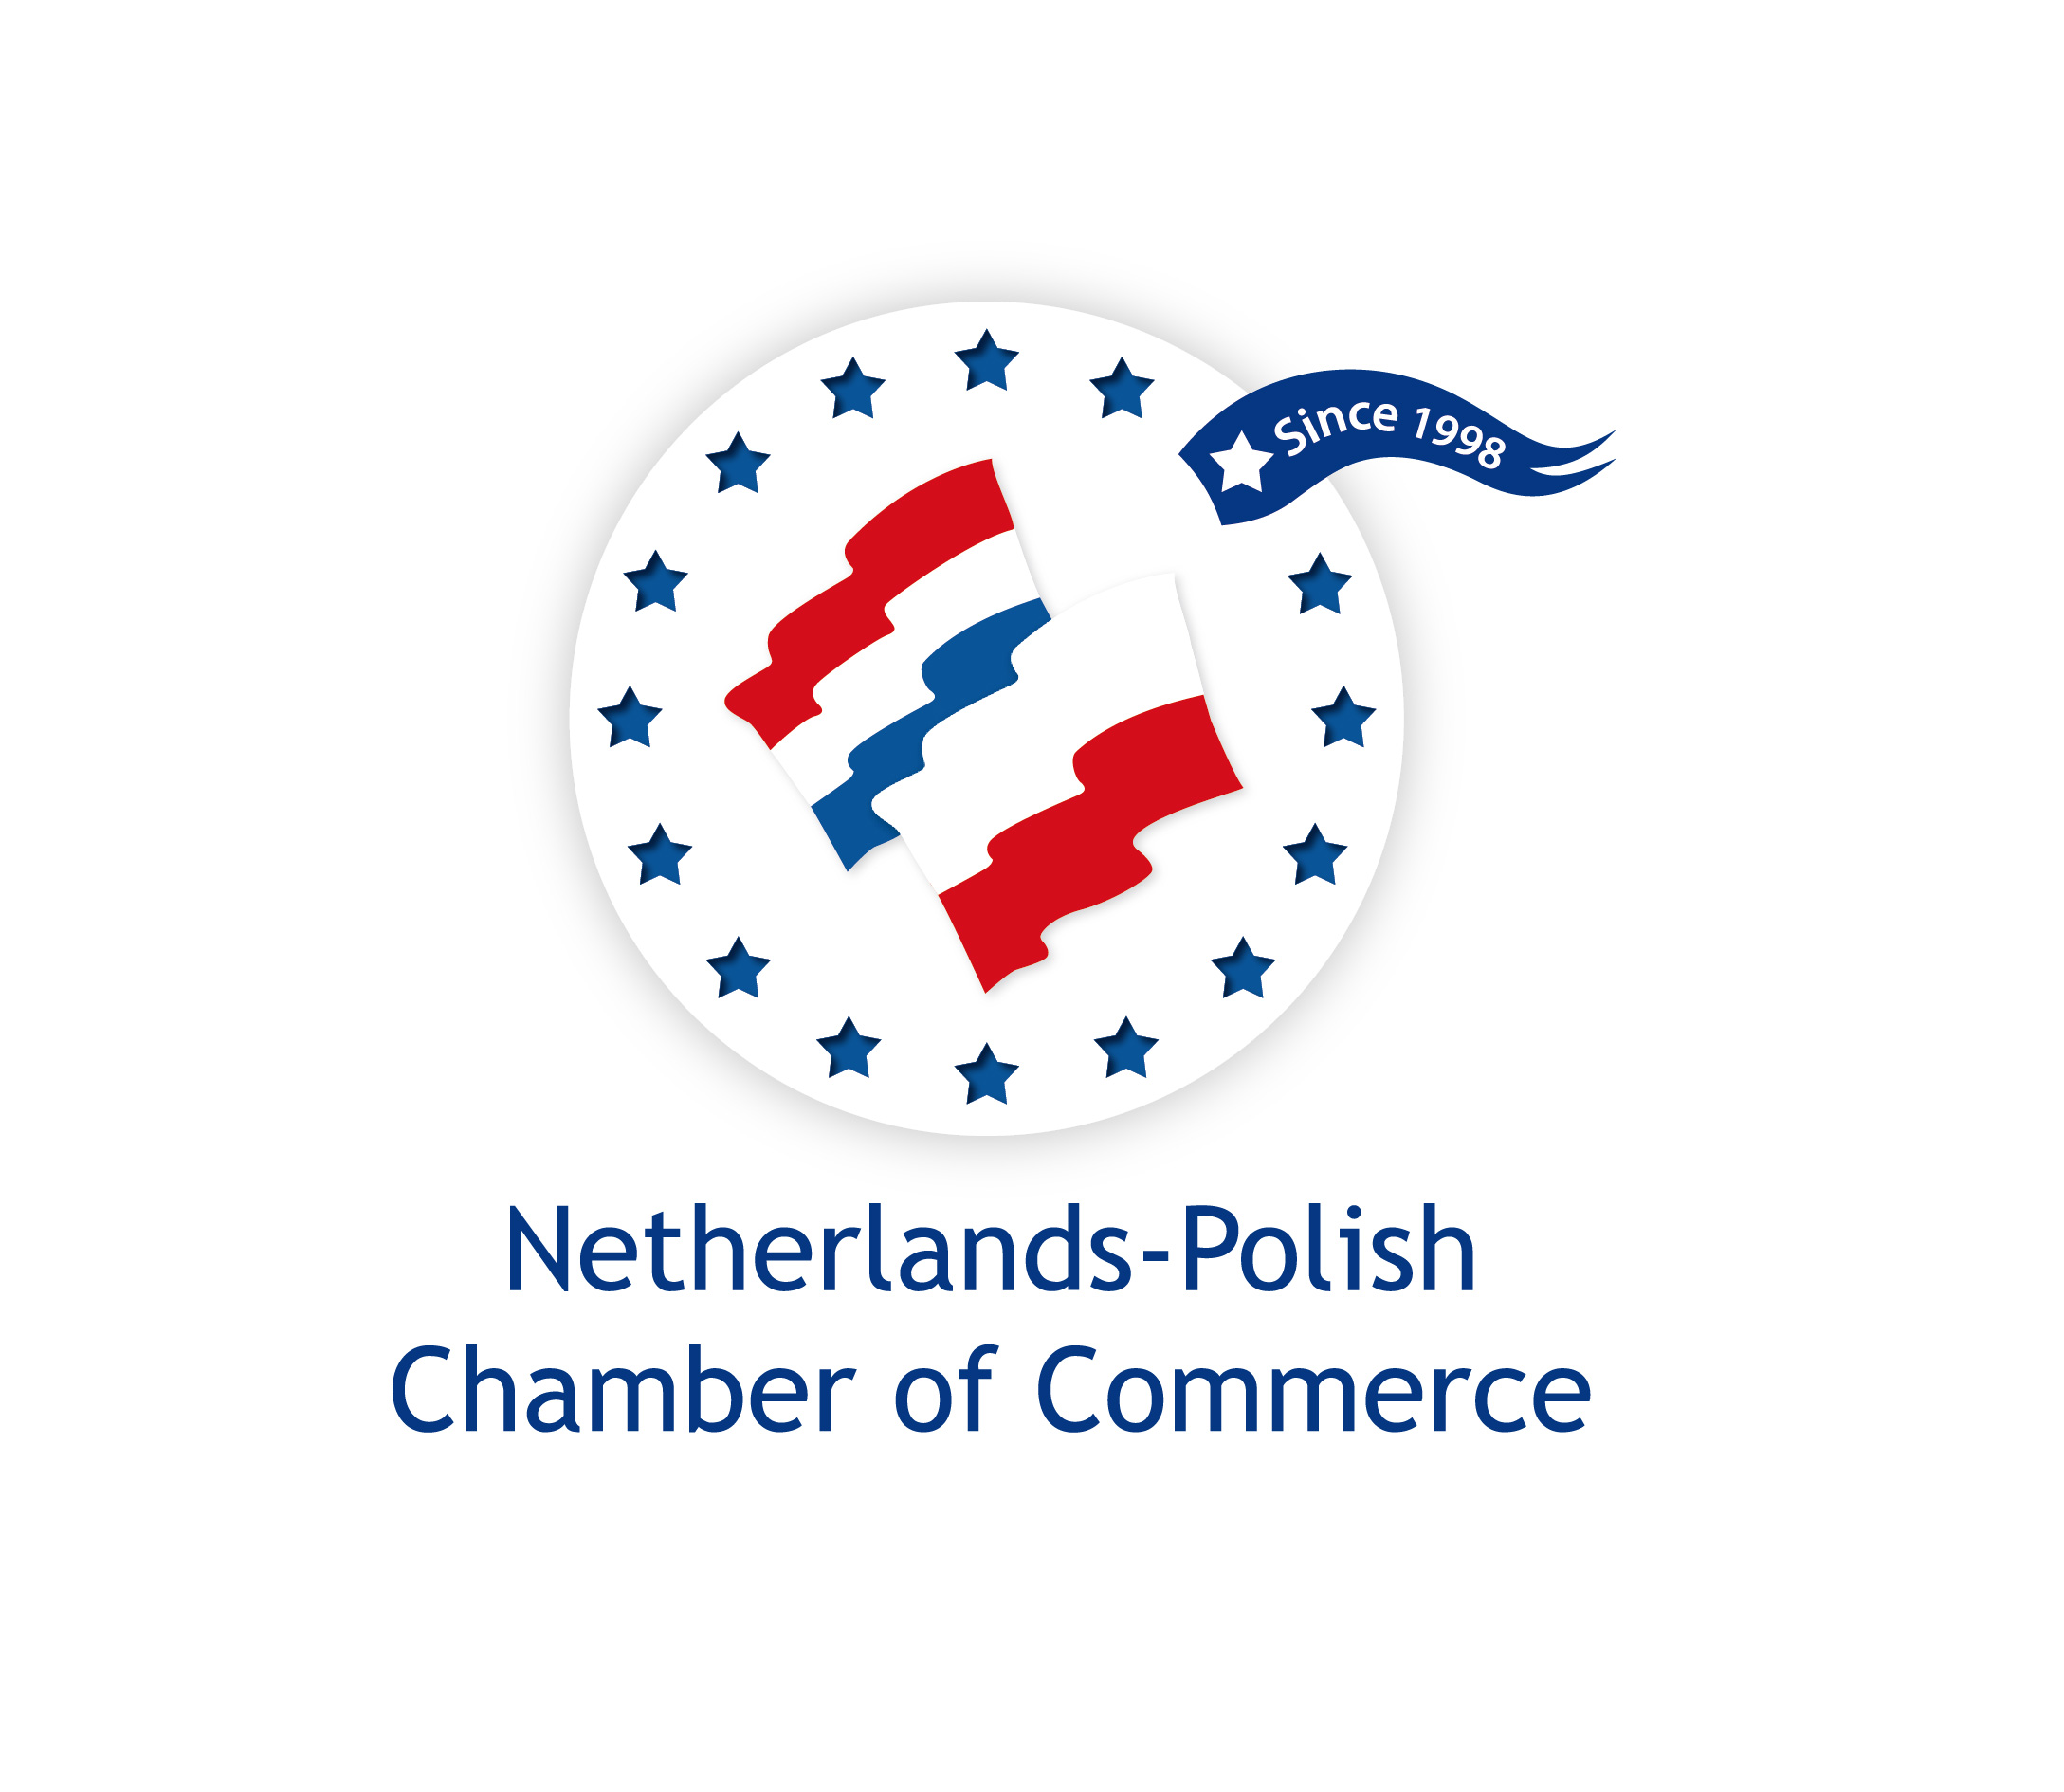 Netherlands-polish chamber of commerce